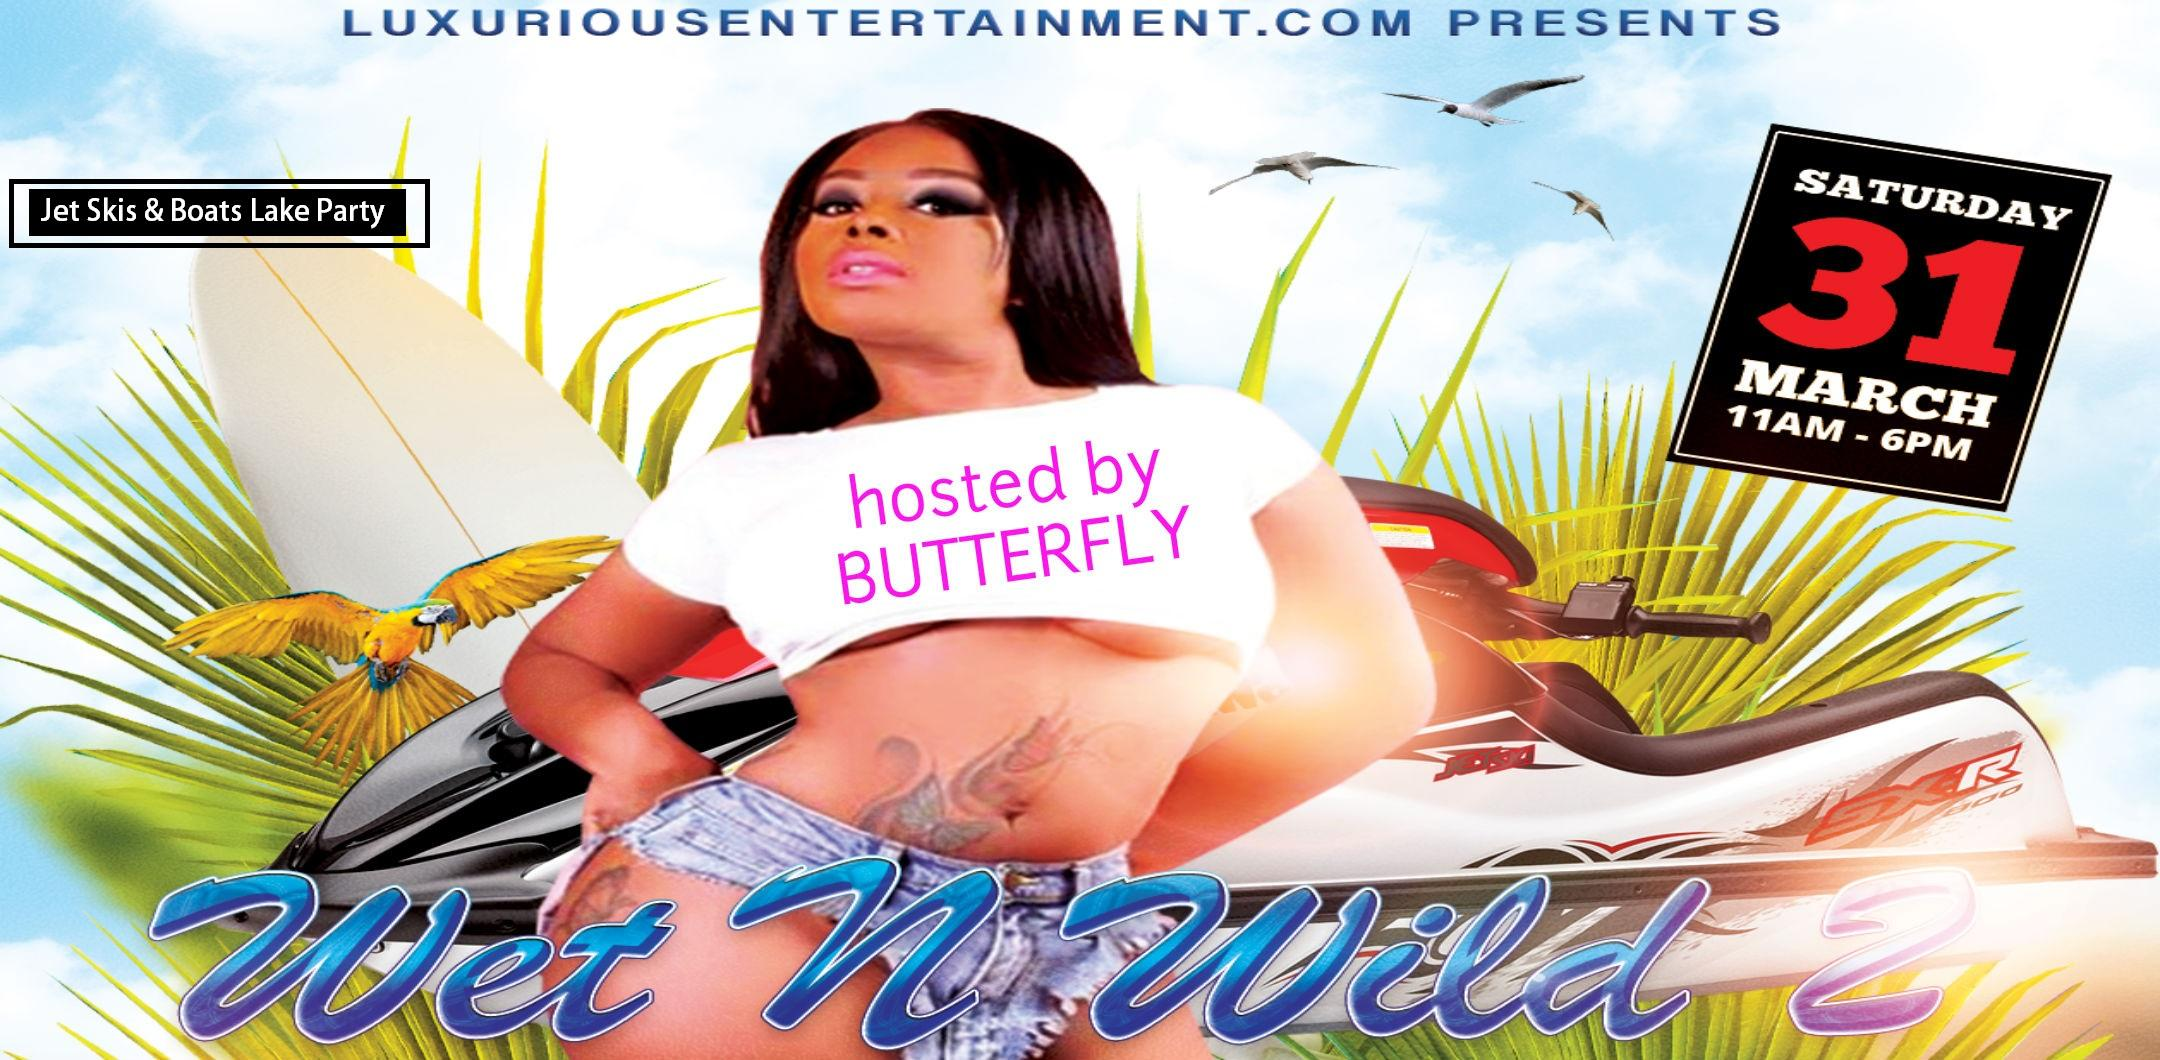 """""""Wet N Wild 2"""" Jet Skis & Boats Lake Party"""